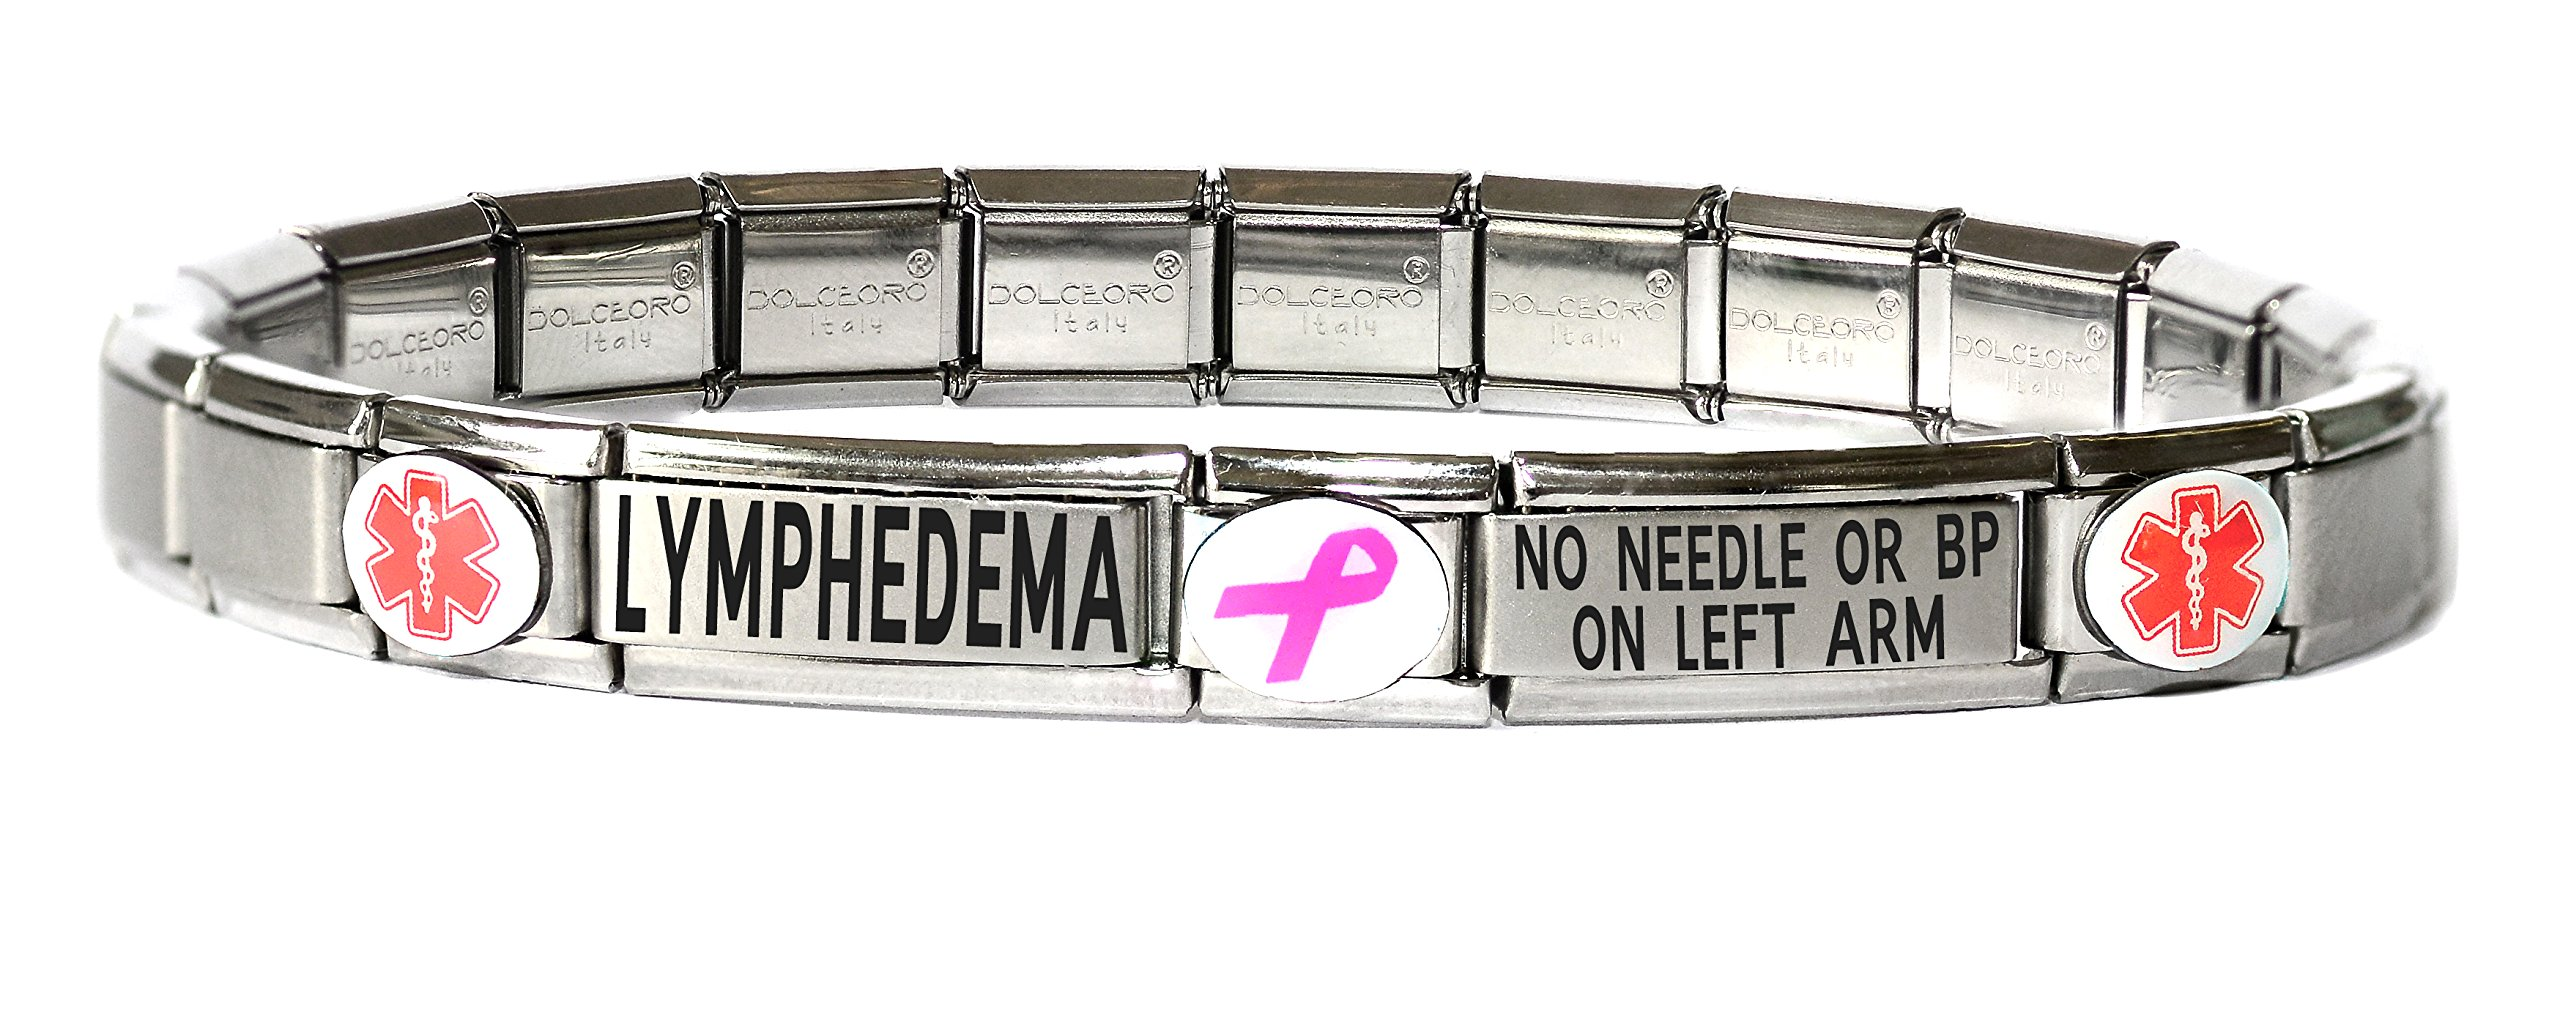 Dolceoro Lymphedema No Needle BP ON Left ARM Medical Alert Bracelet - Stainless Steel Stretchable Modular Charm Links